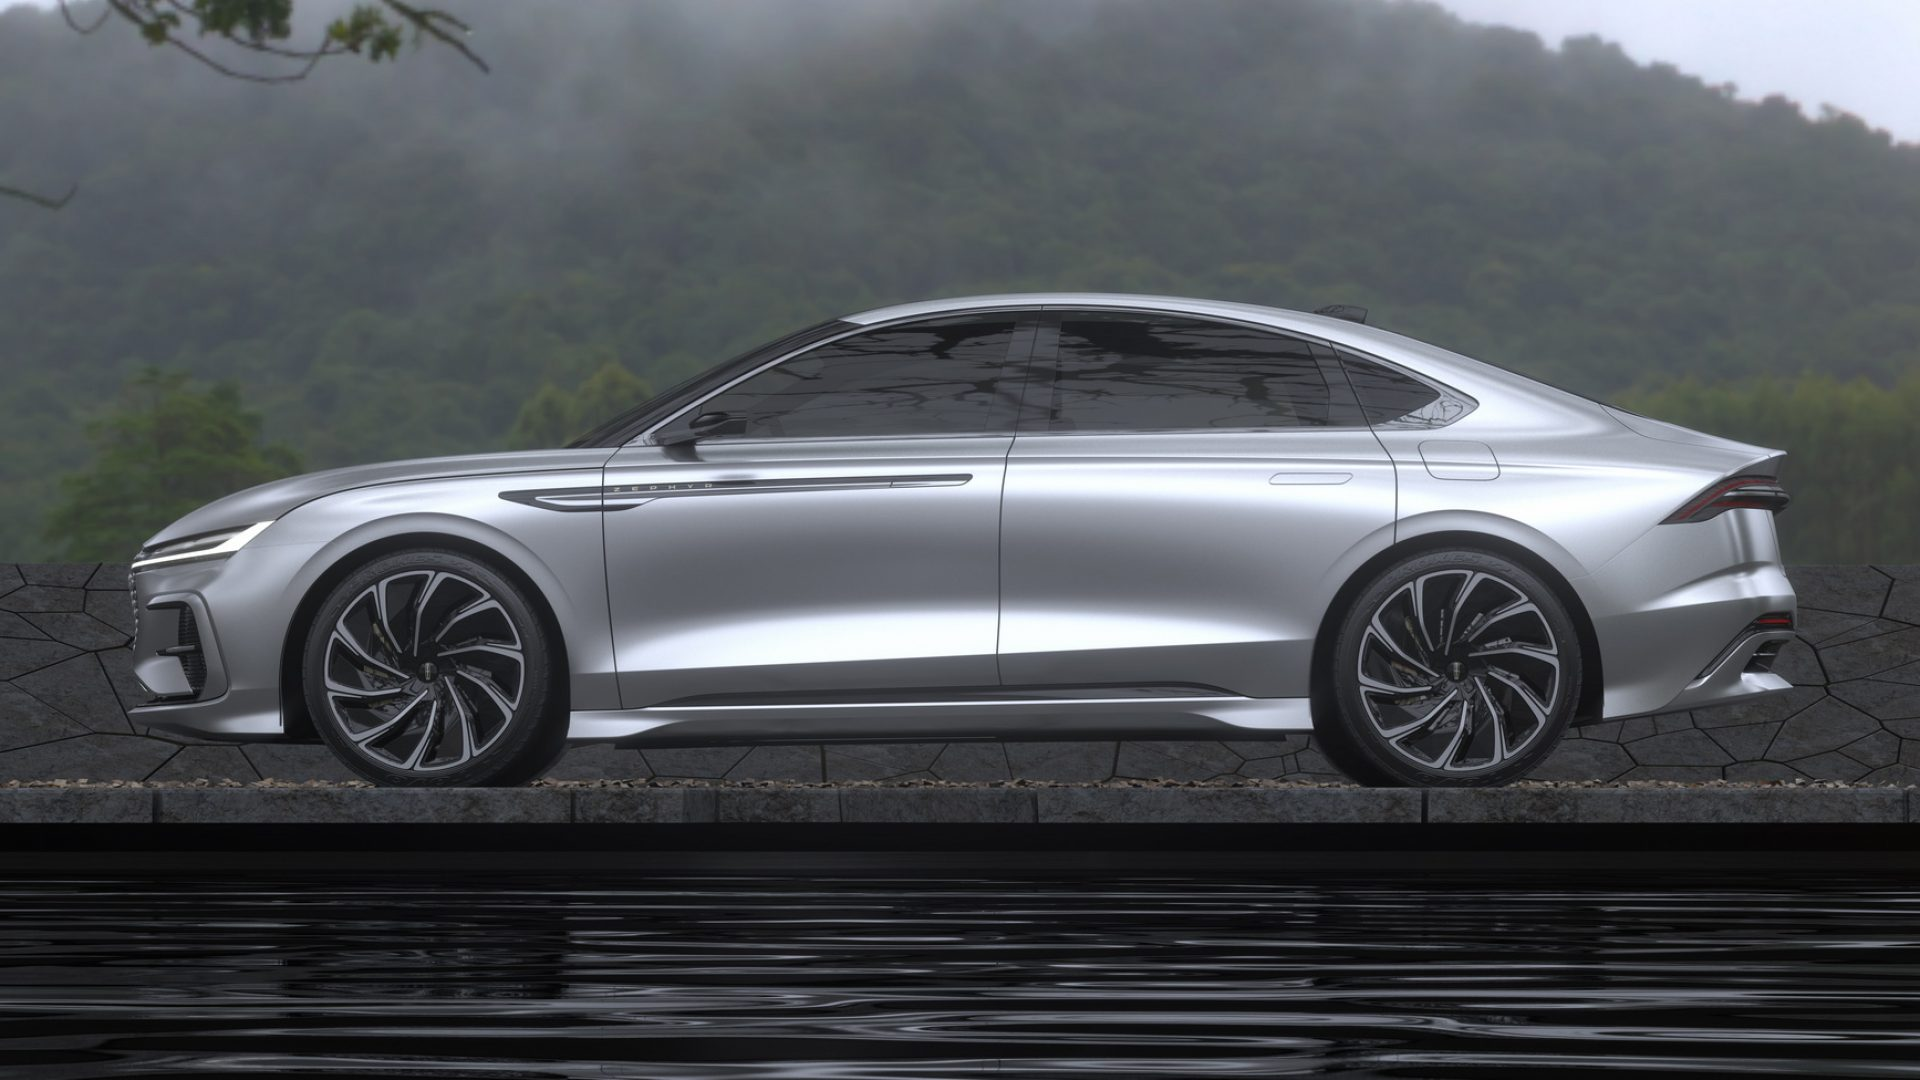 2021-Lincoln-Zephyr-Reflection-Preview-Car-02